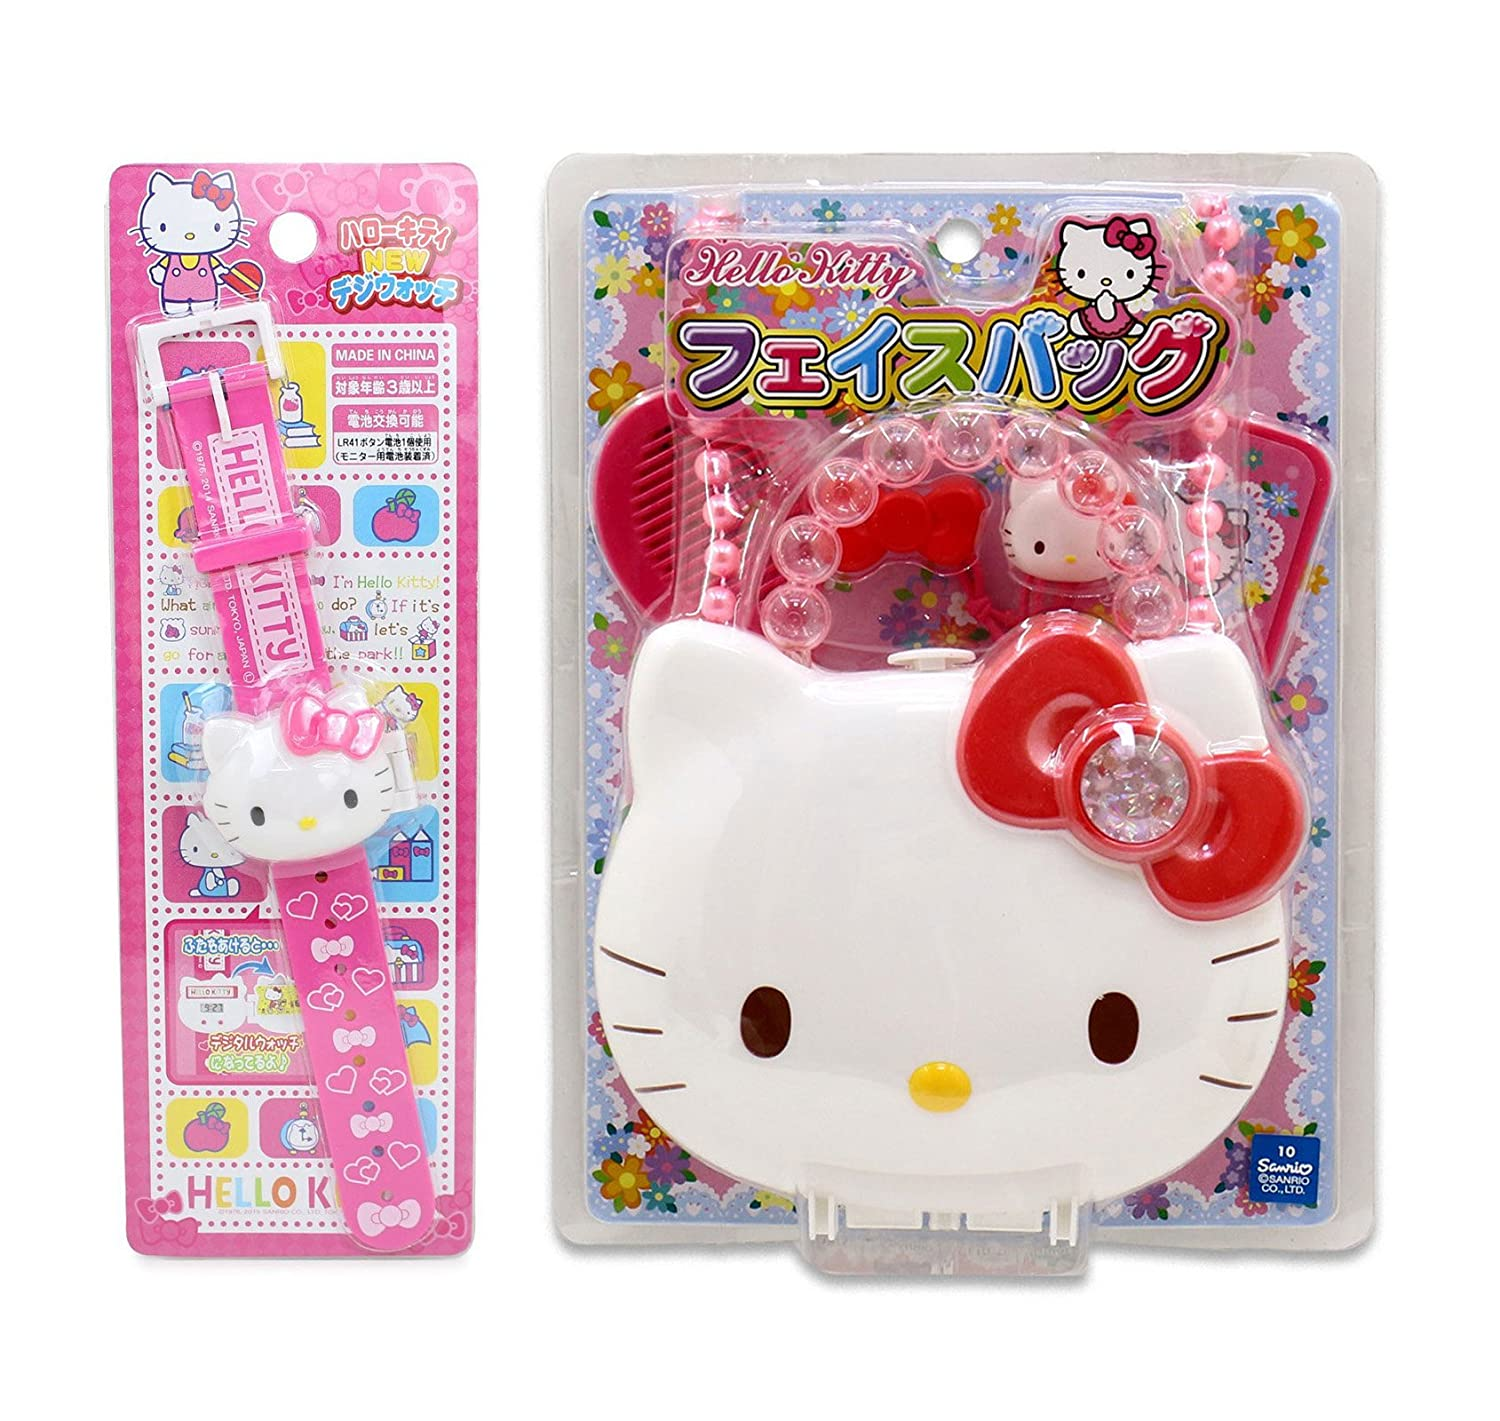 Hello Kitty Purse with Accessories and Watch Sold Together (Japan Import)